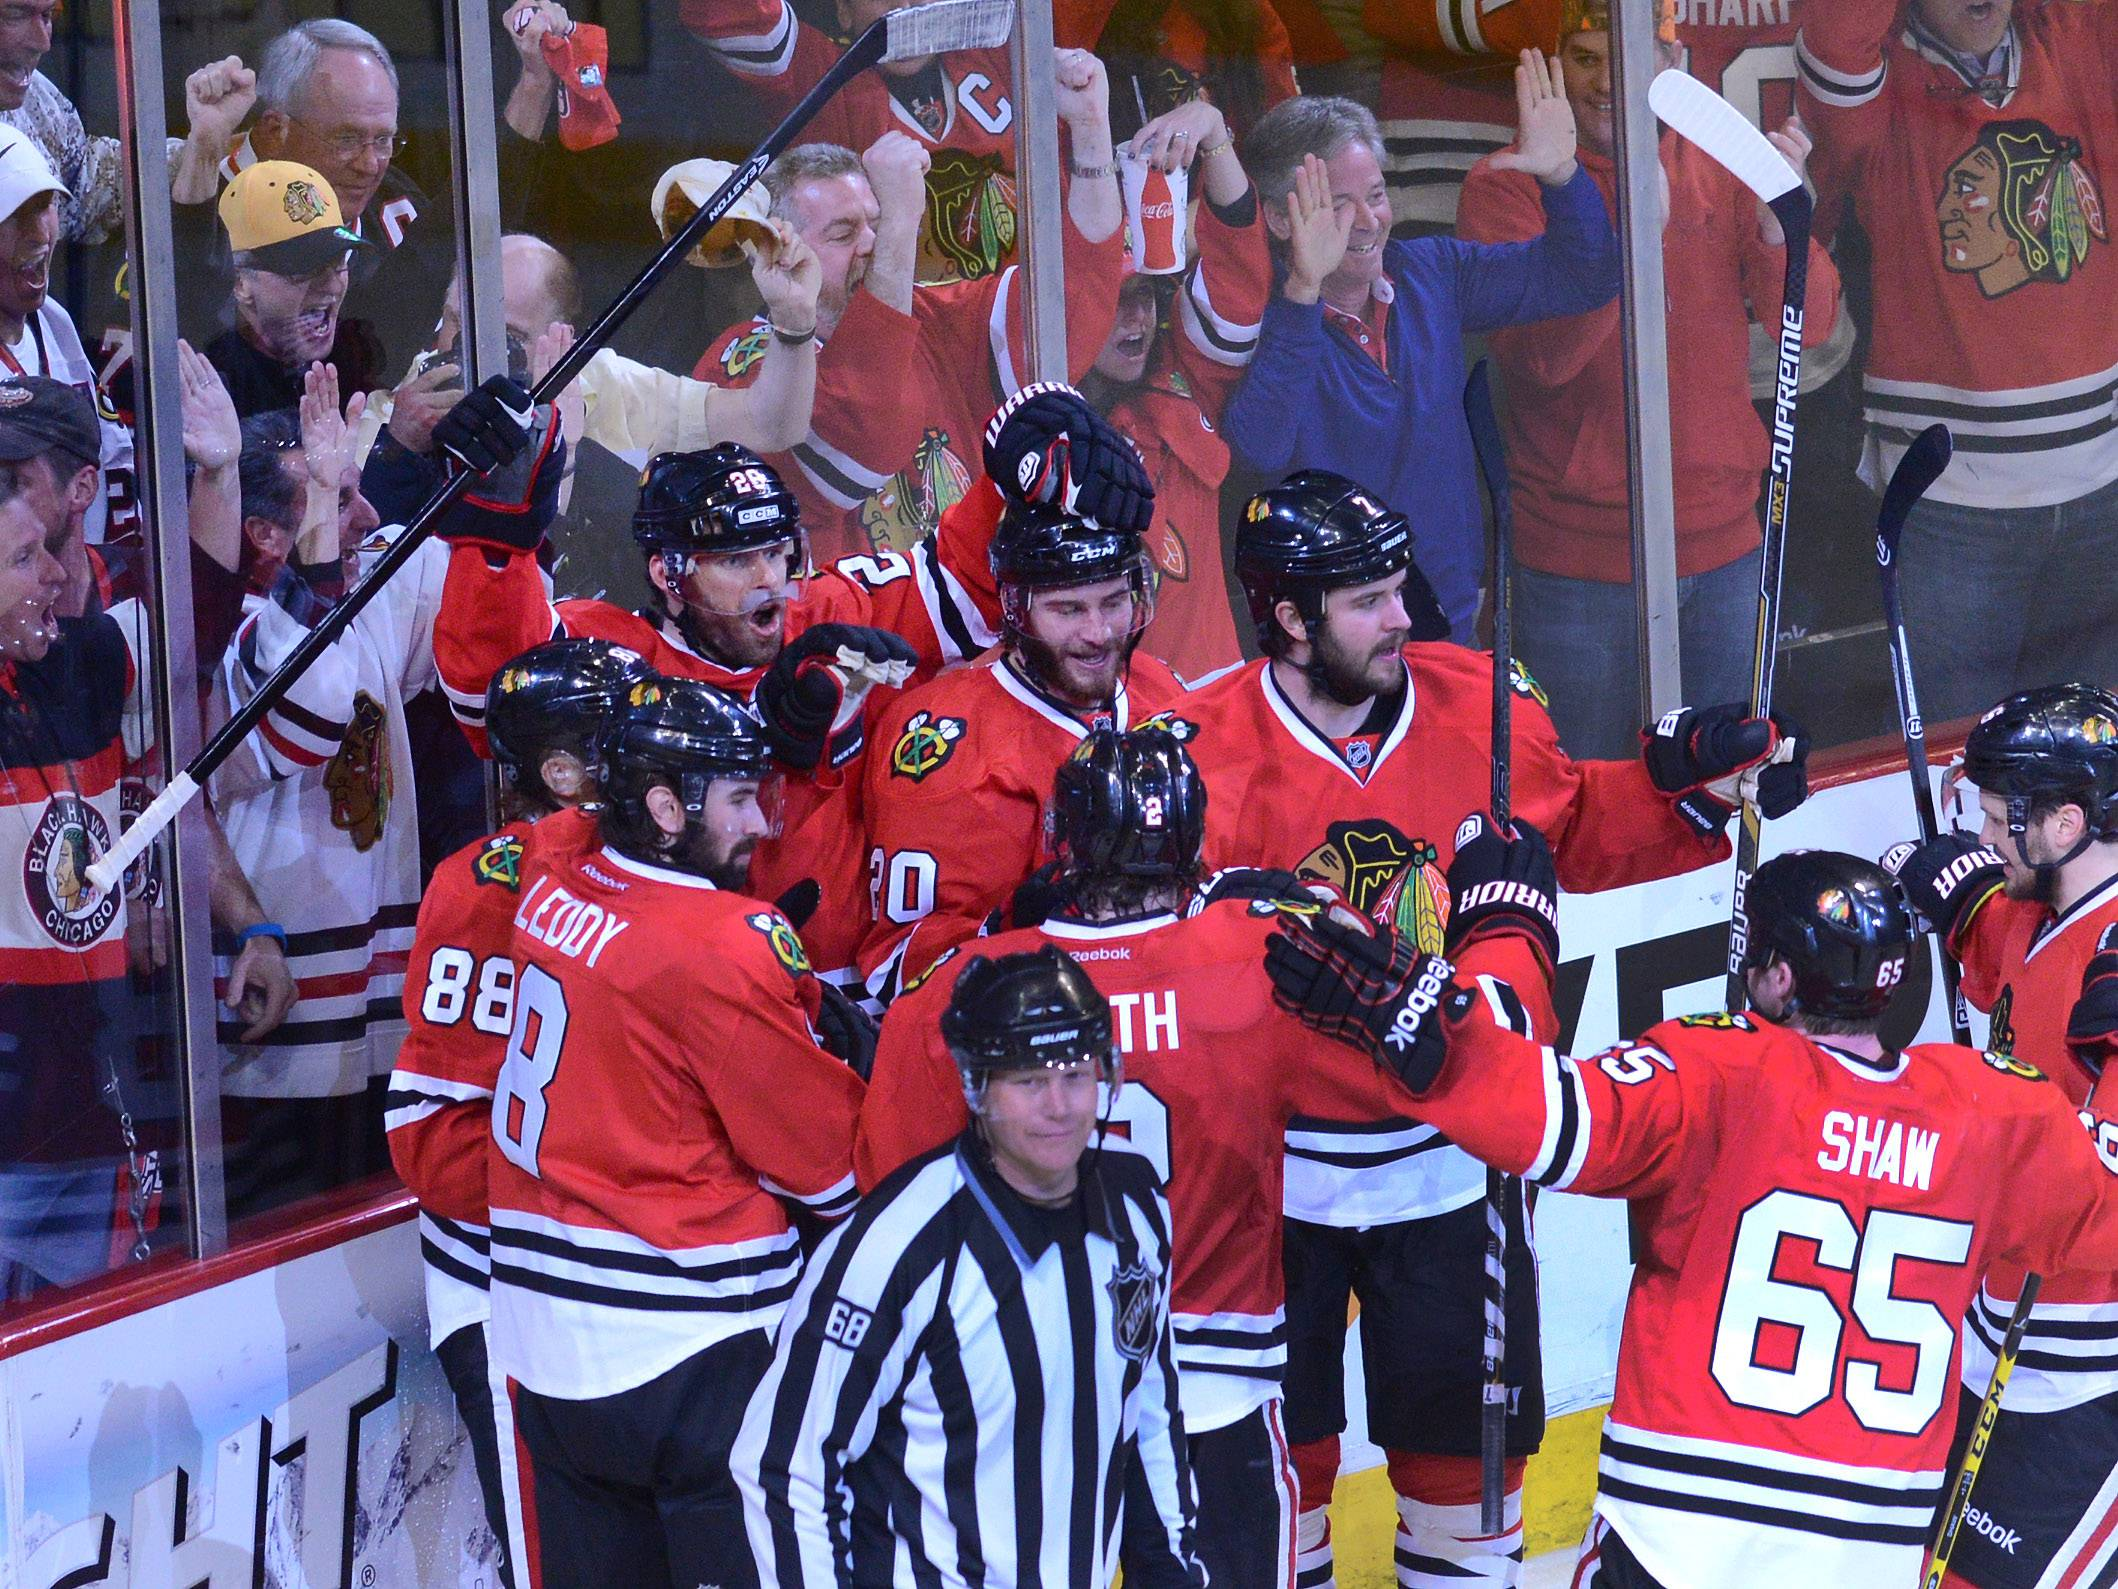 Chicago Blackhawks center Michal Handzus, left, celebrates a game winning goal with right wing Patrick Kaneand defenseman Nick Leddy, right, as Los Angeles Kings defenseman Slava Voynov, second from right, skates off during the second overtime period.